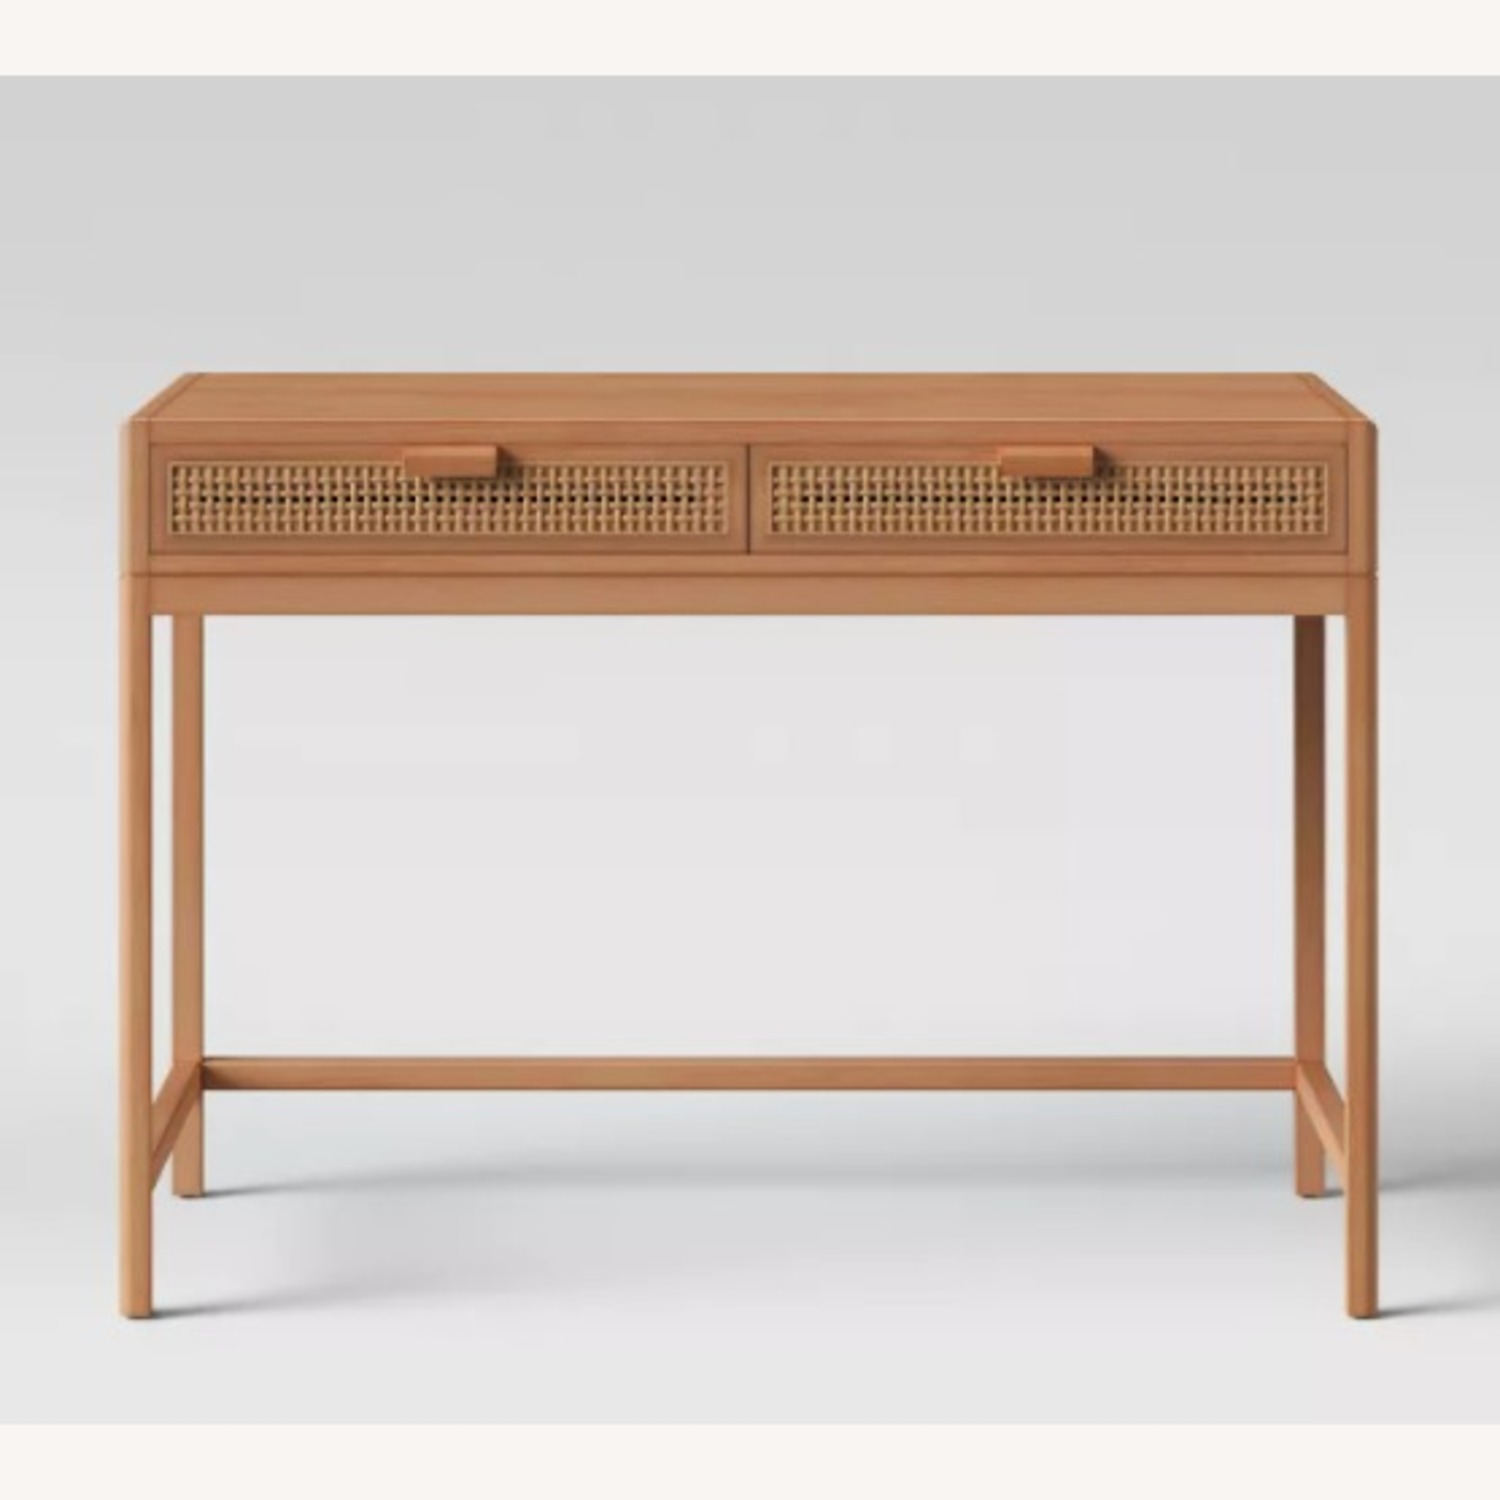 Target Opalhouse Writing Desk with Drawers Brown - image-1